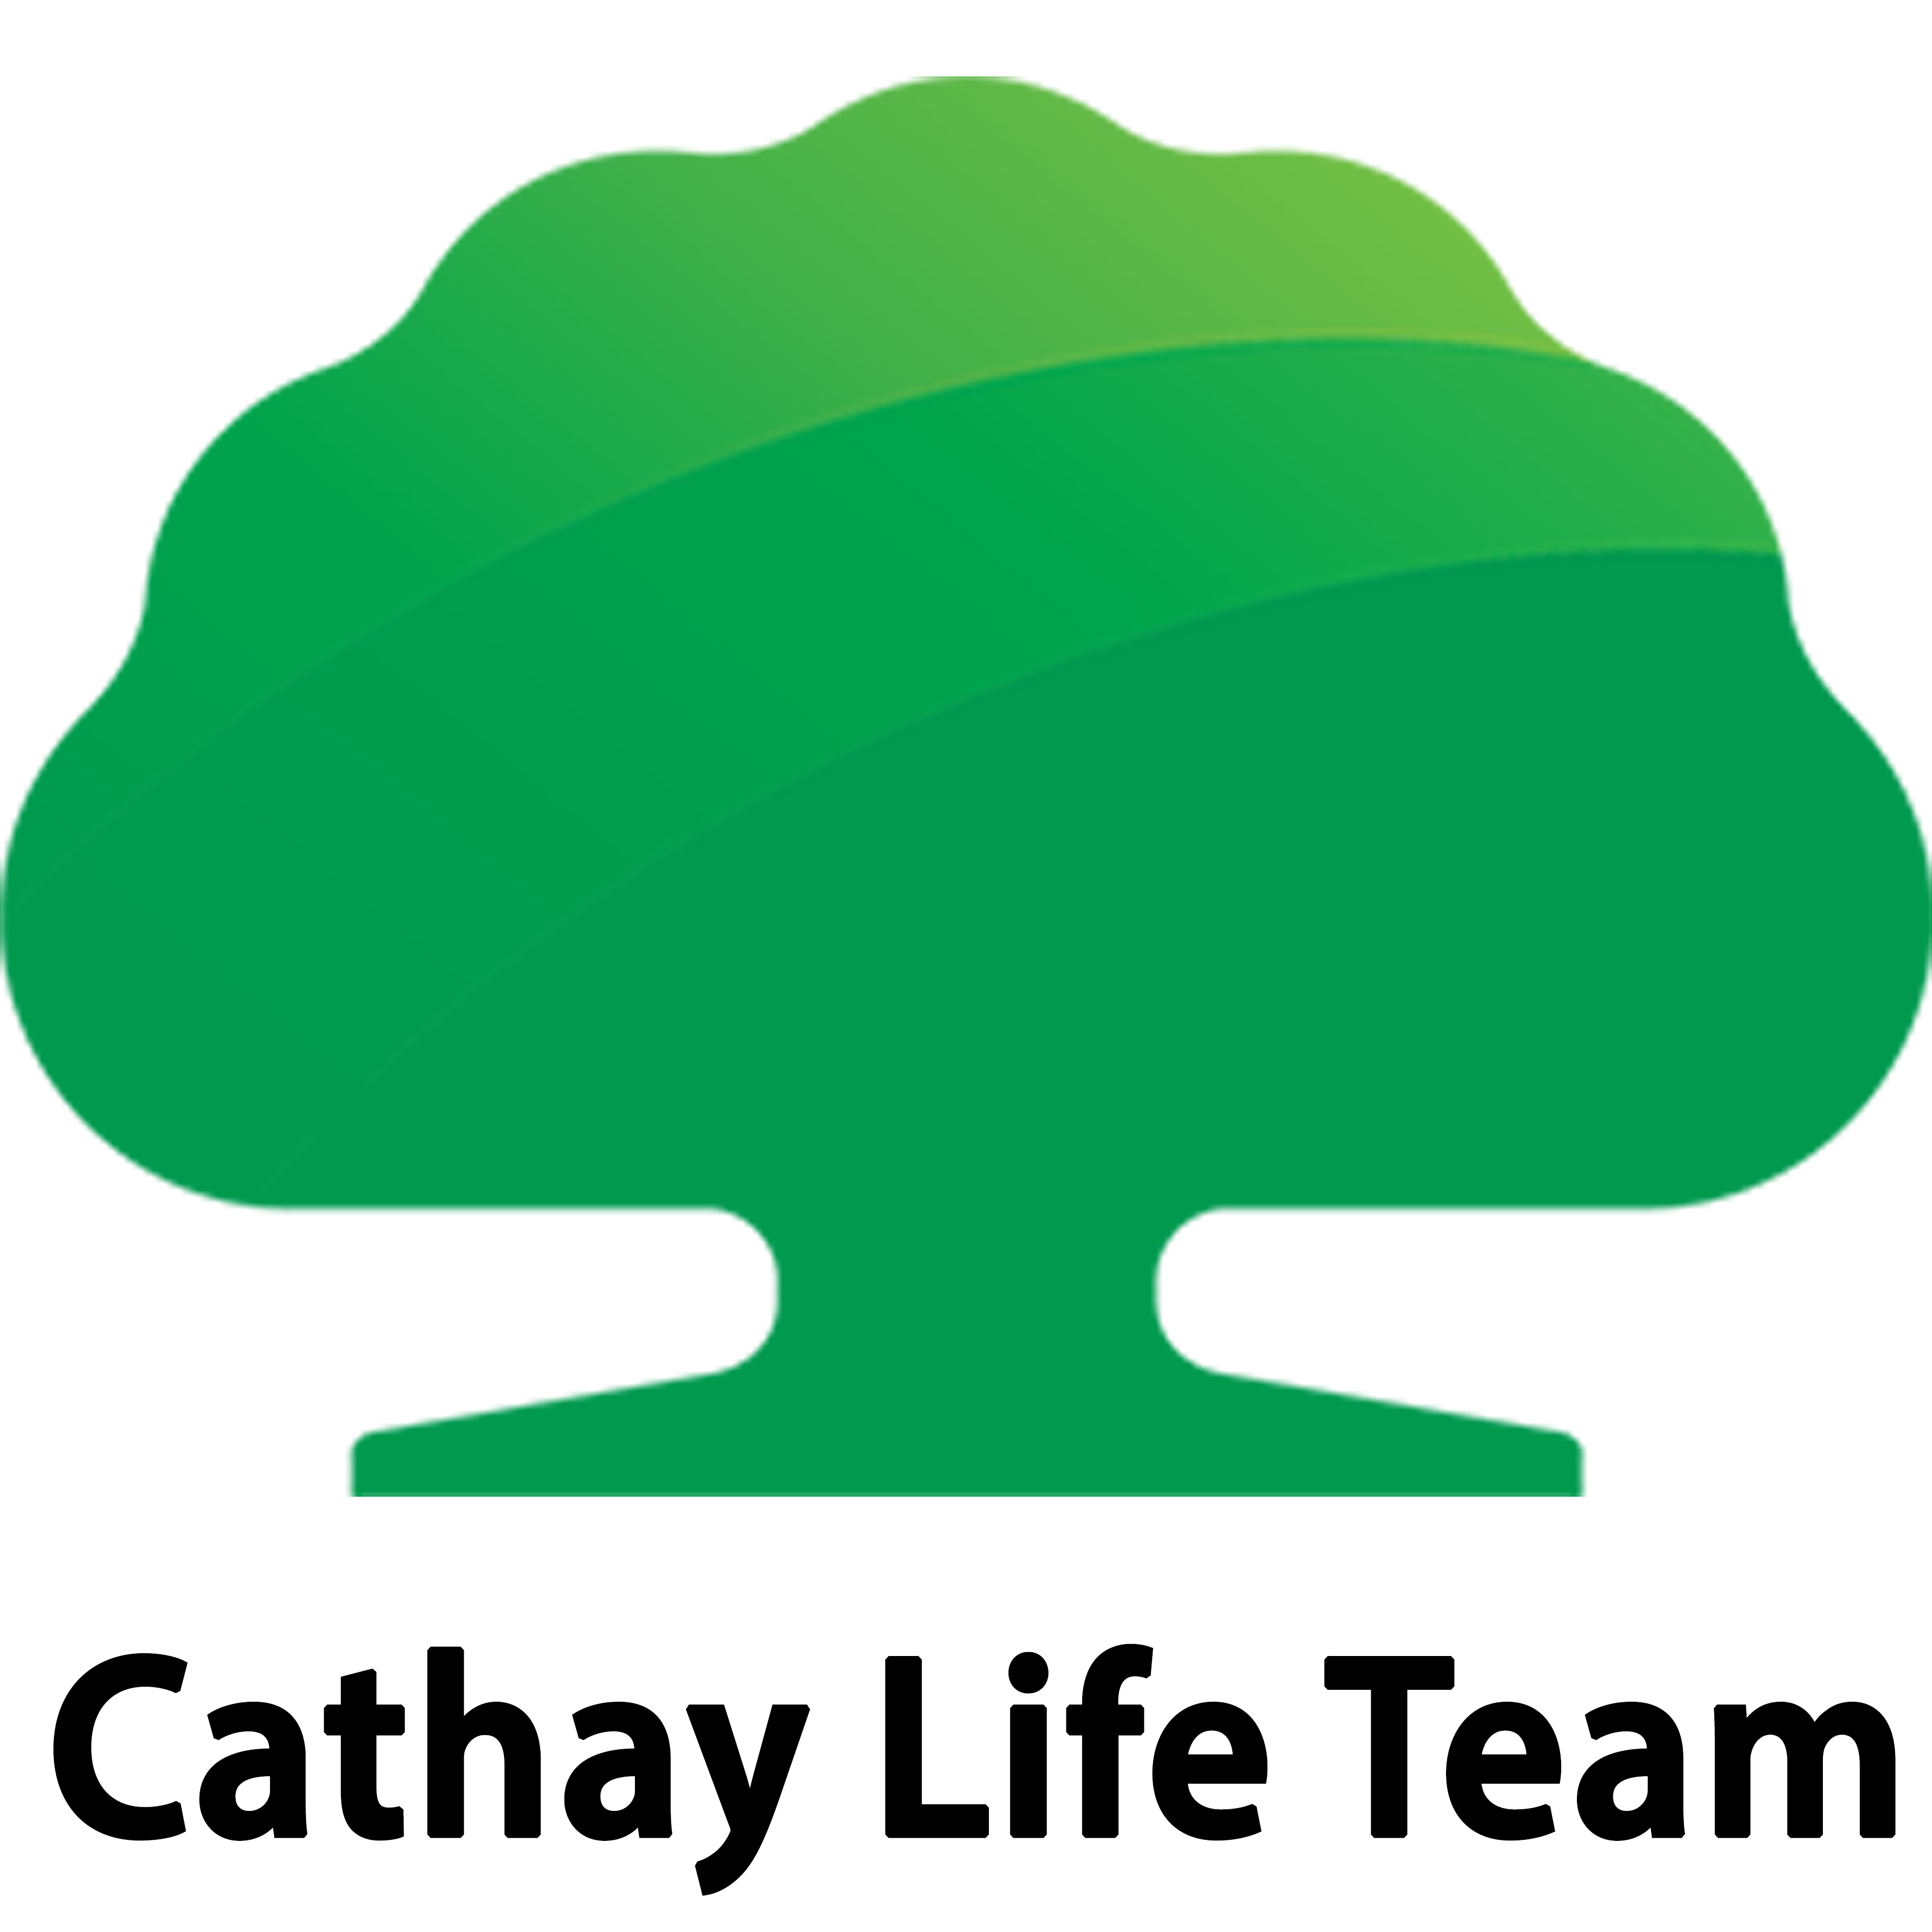 Cathay Life Team